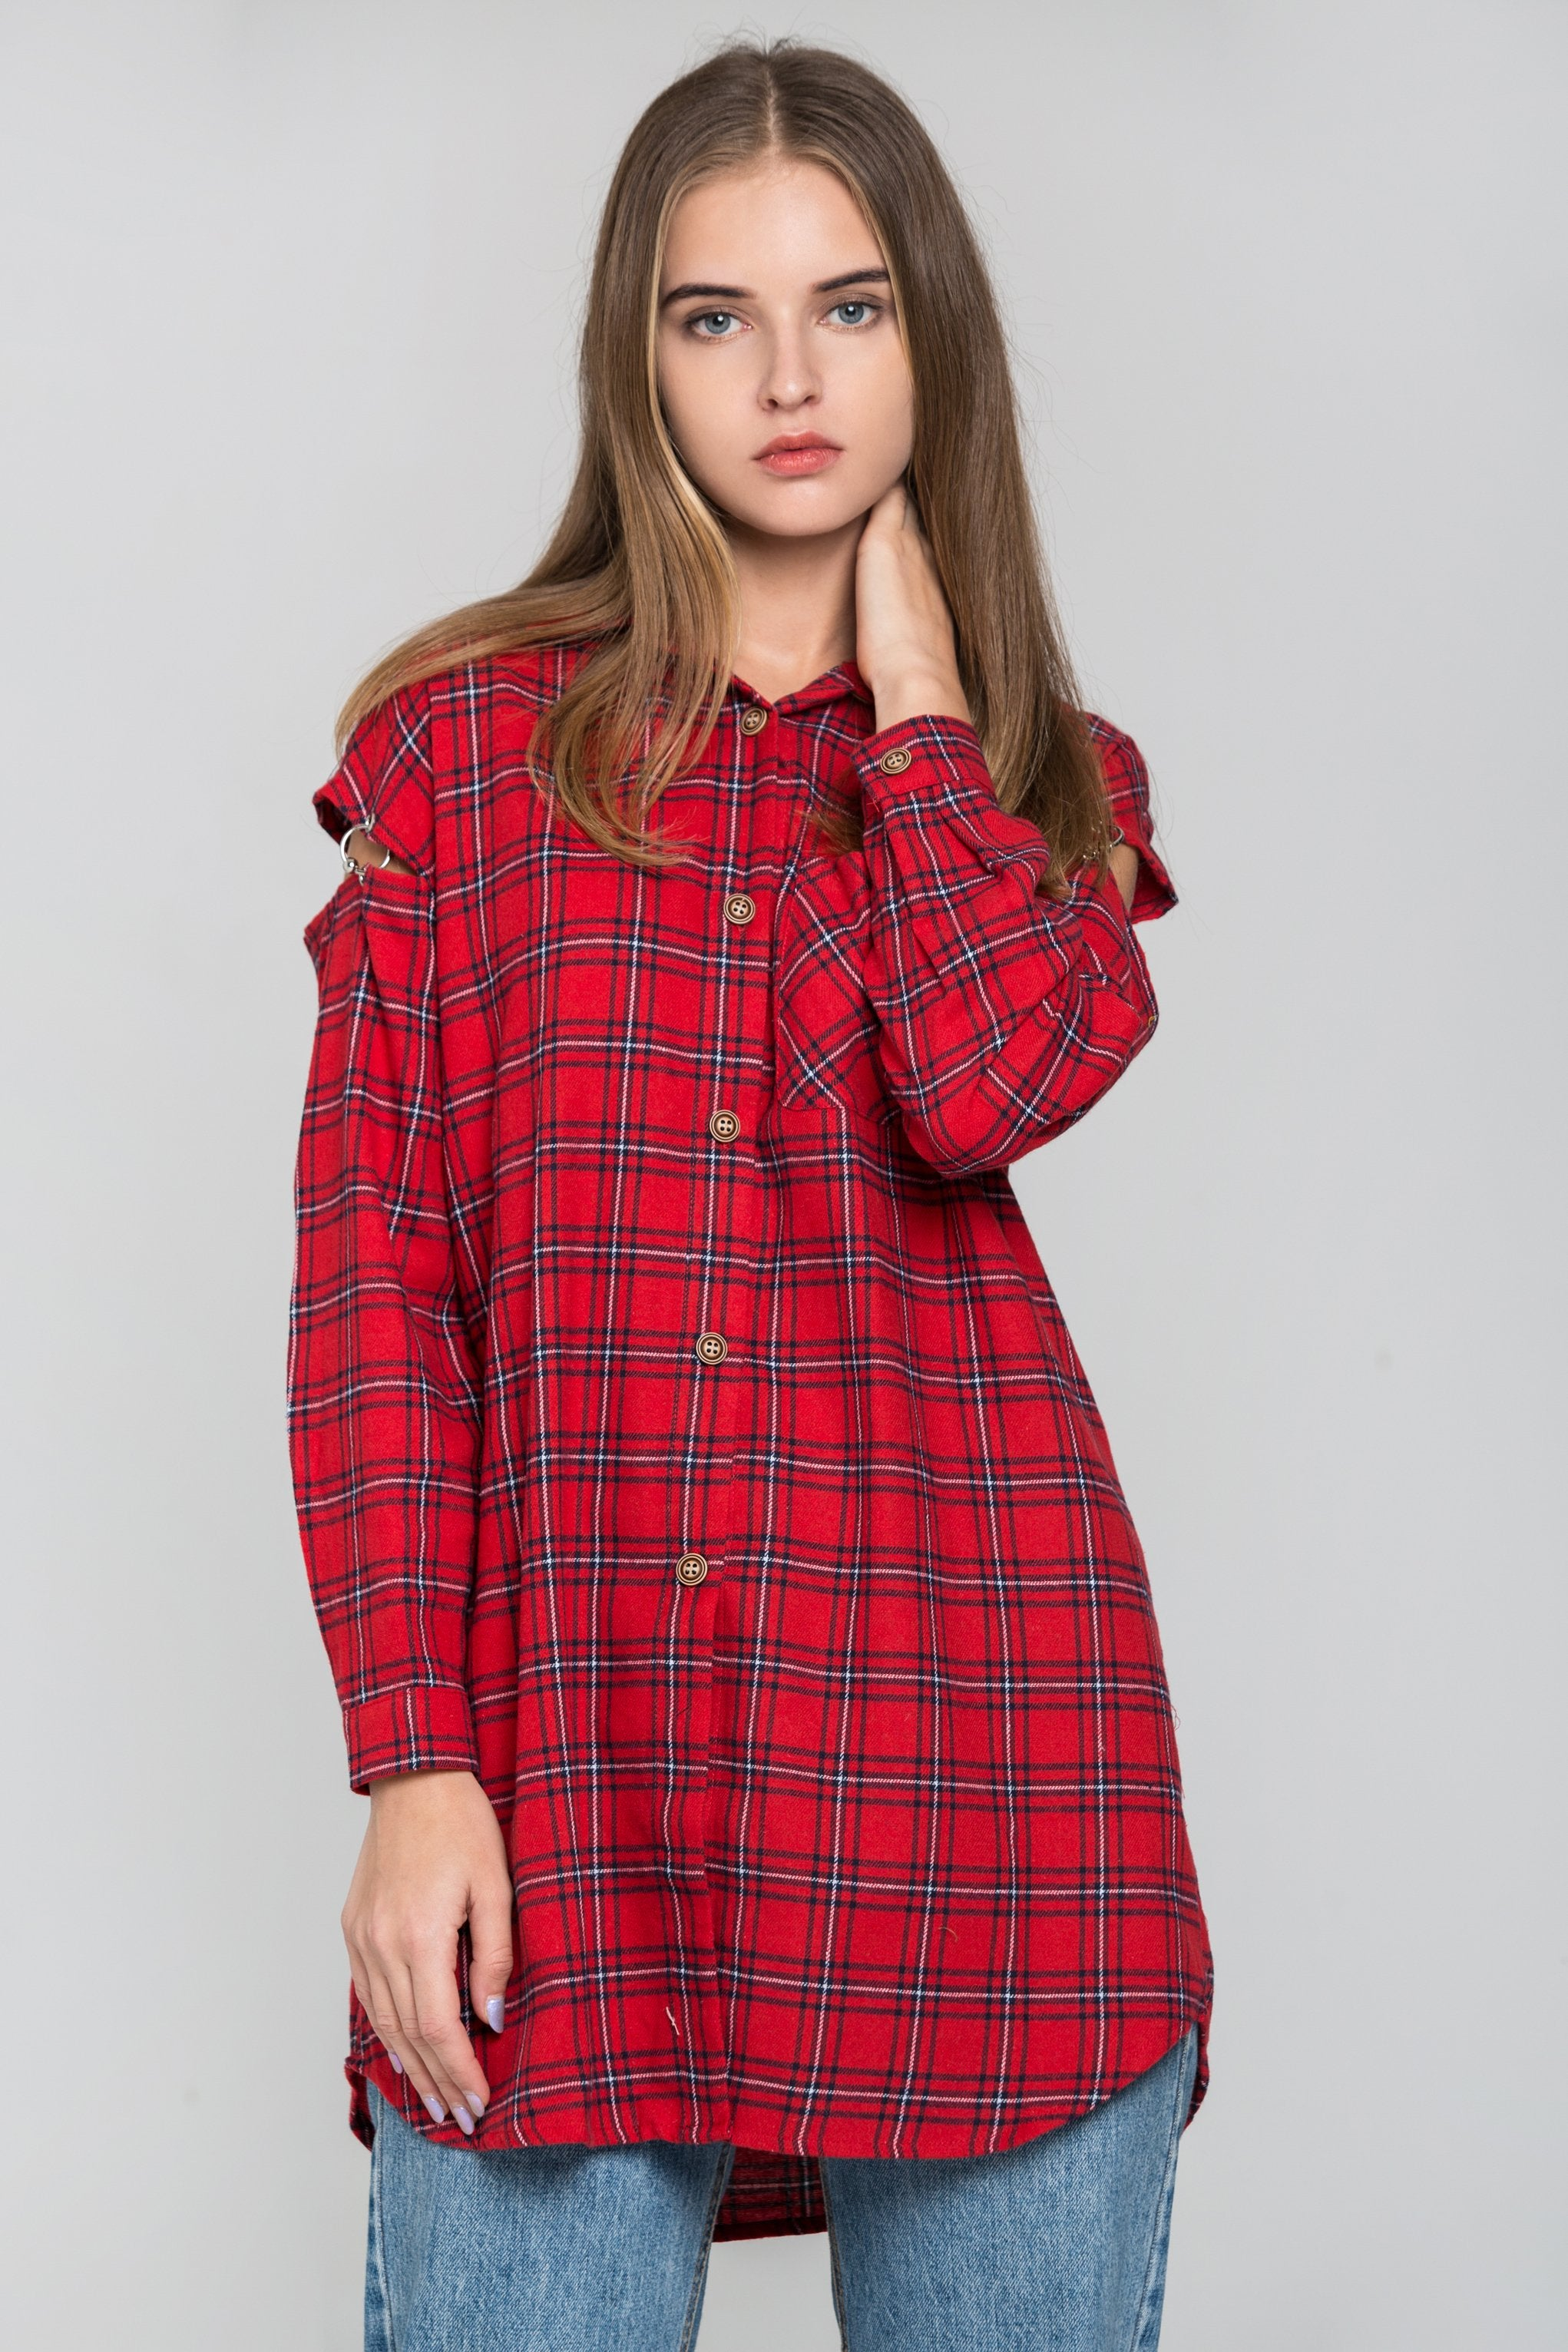 Red Plaid Cold Shoulder Button Up Top